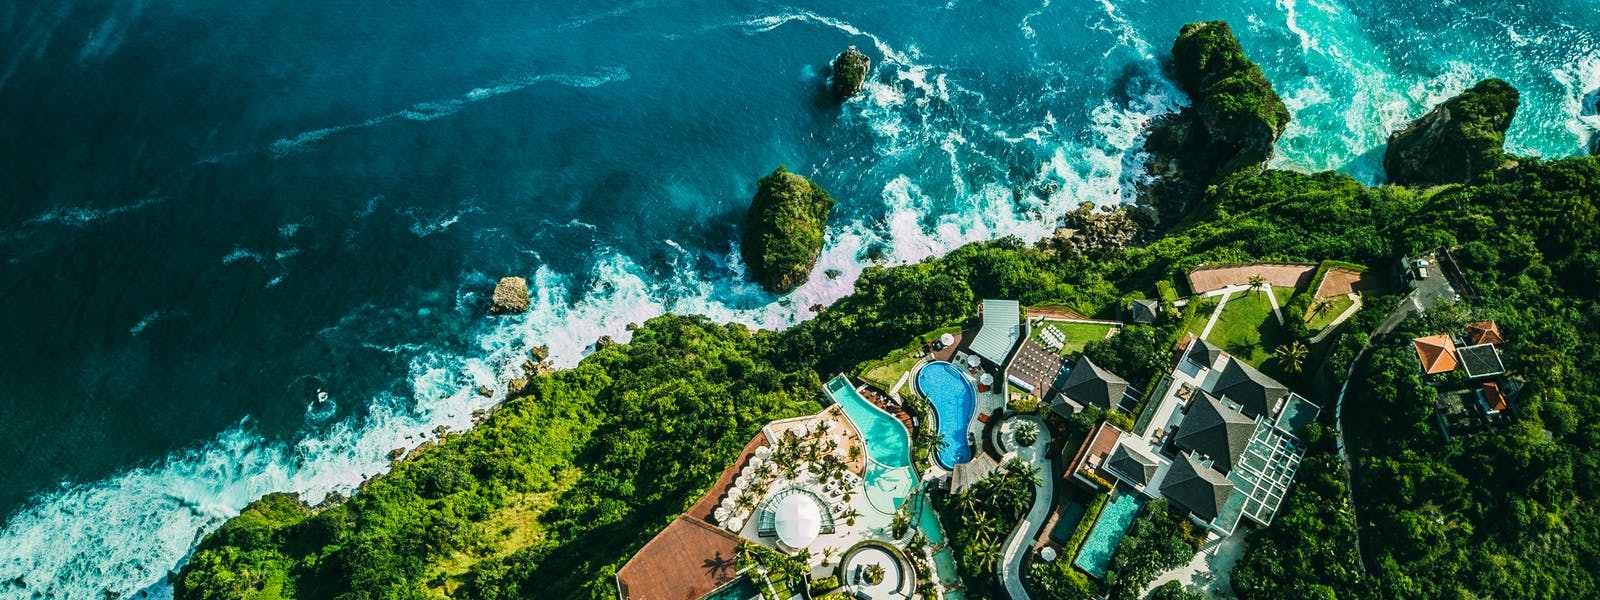 The edge Luxury Villa Resort, Pecatu, Uluwatu, Bali Indonesia